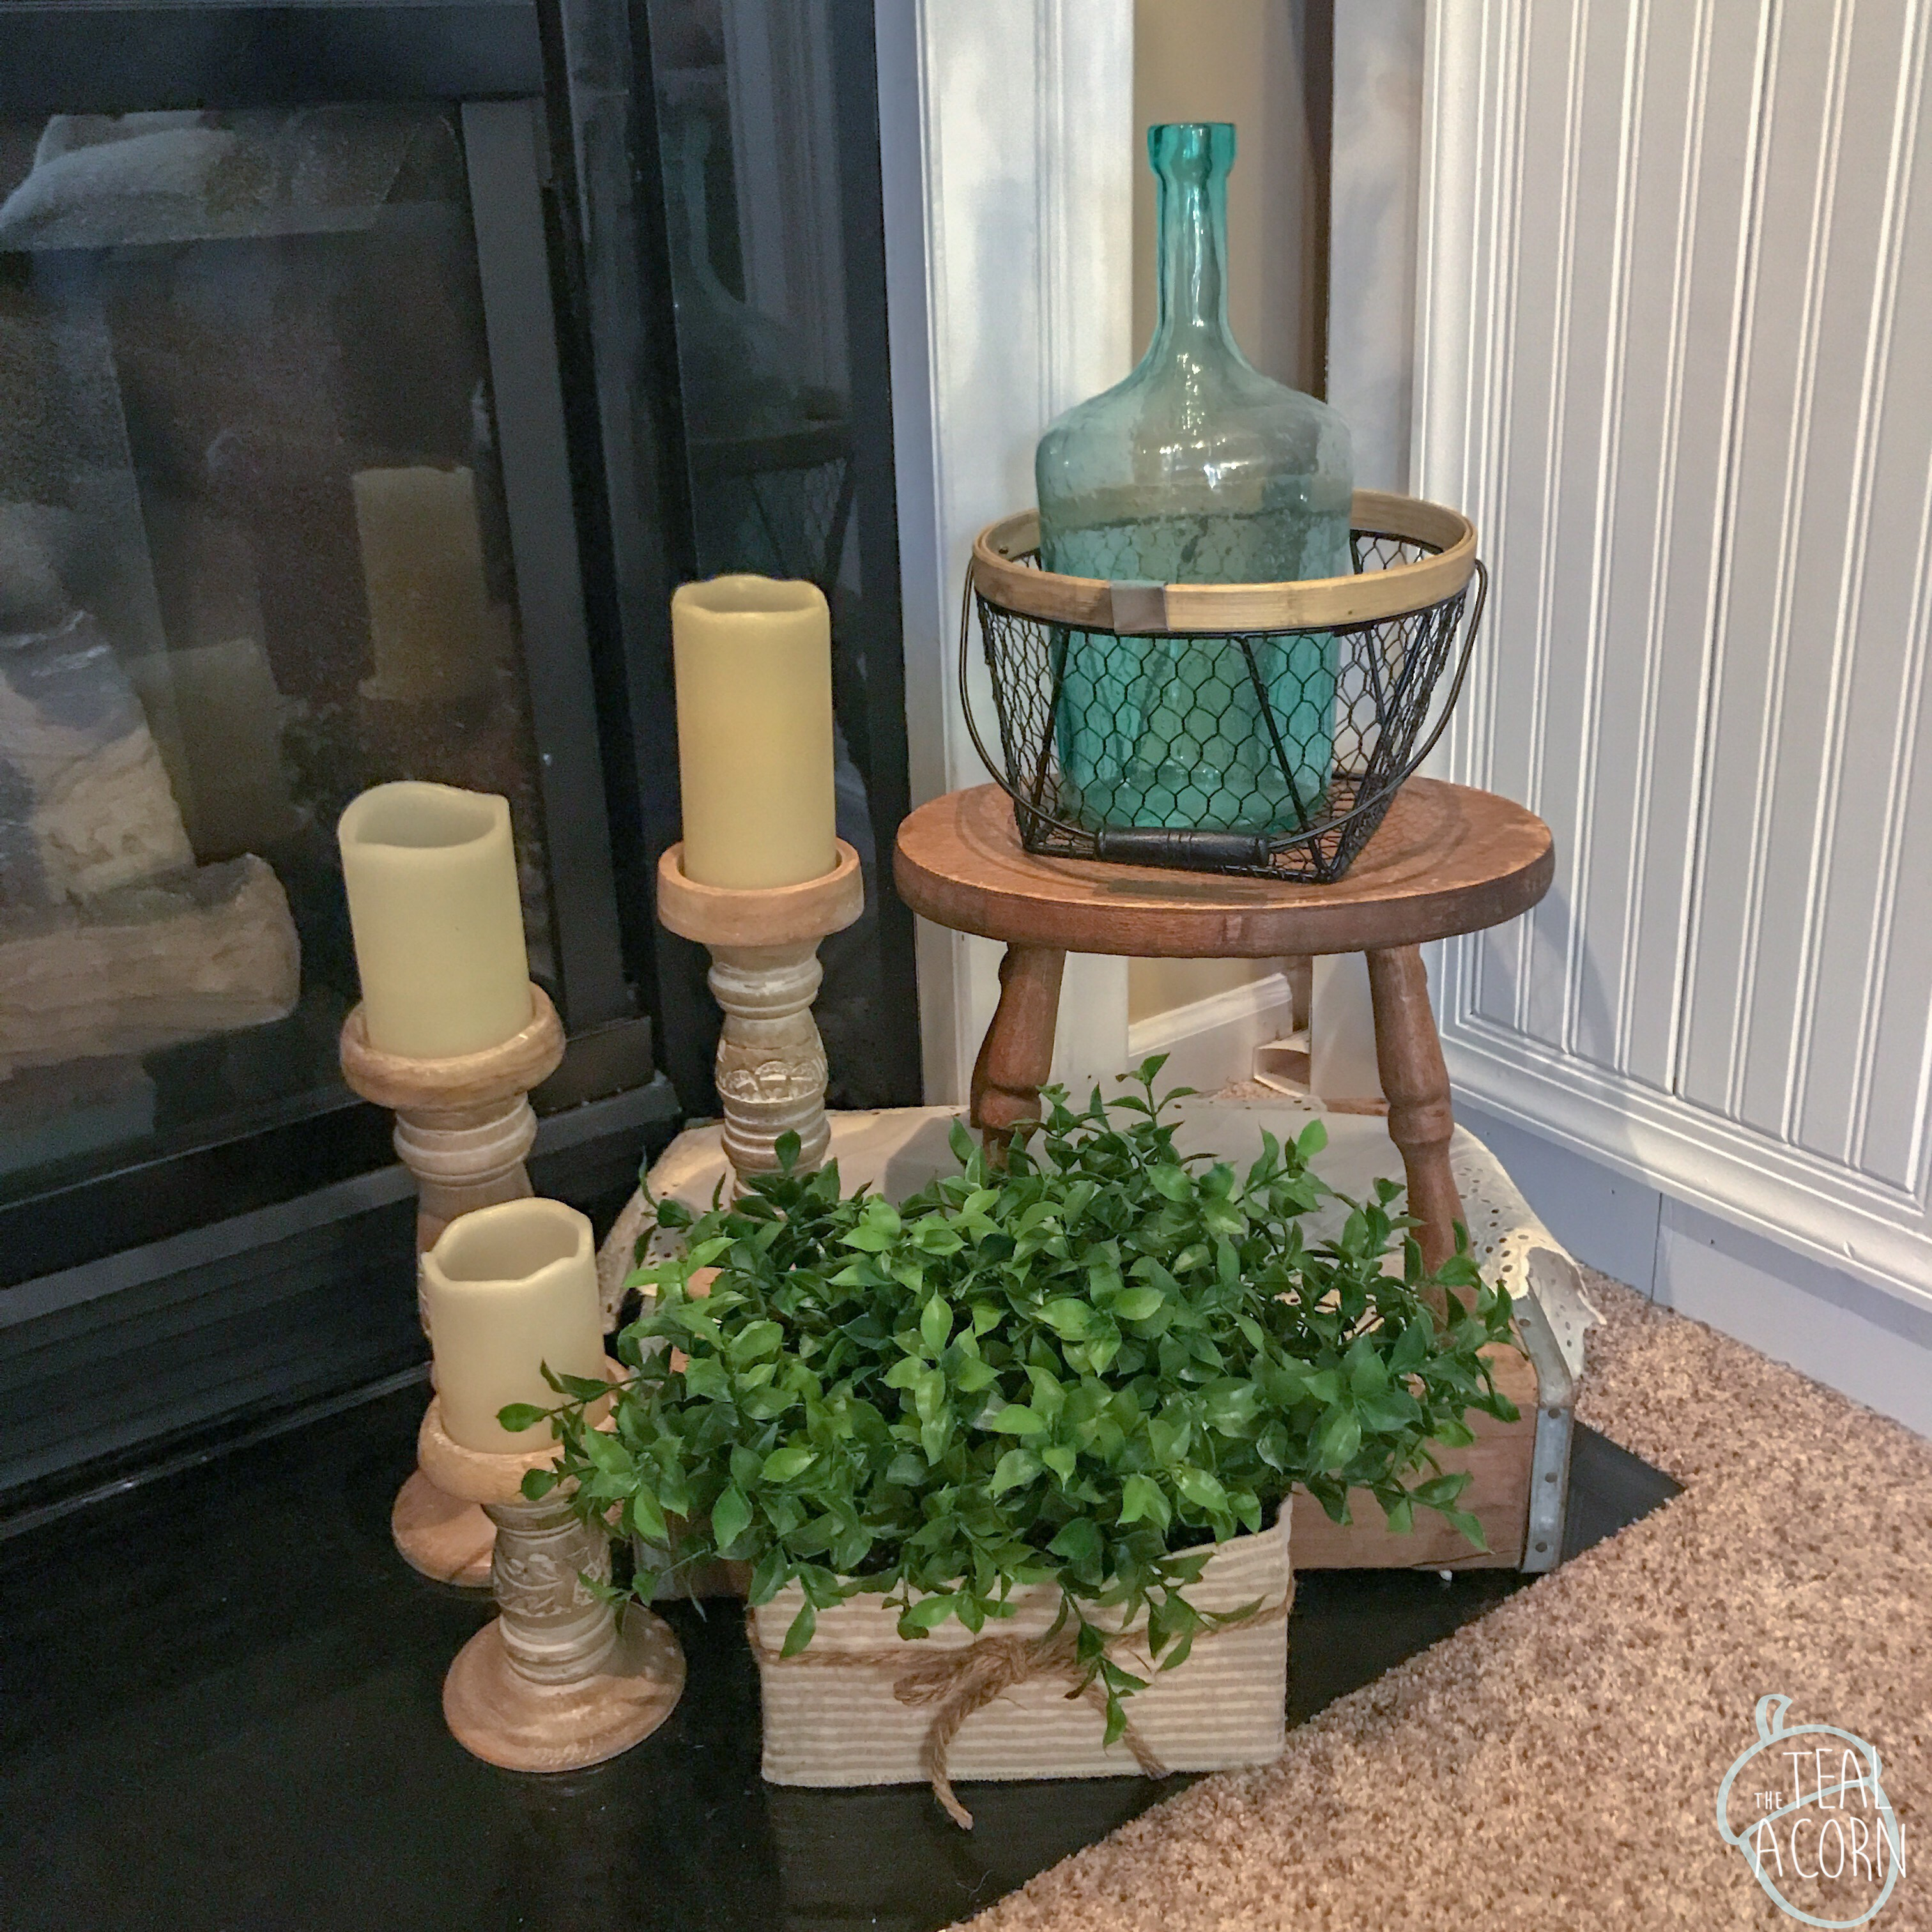 Hearth spring mantle decor with old soda crate, wooden stool, wooden candle sticks, blue green jug, and chicken wire basket